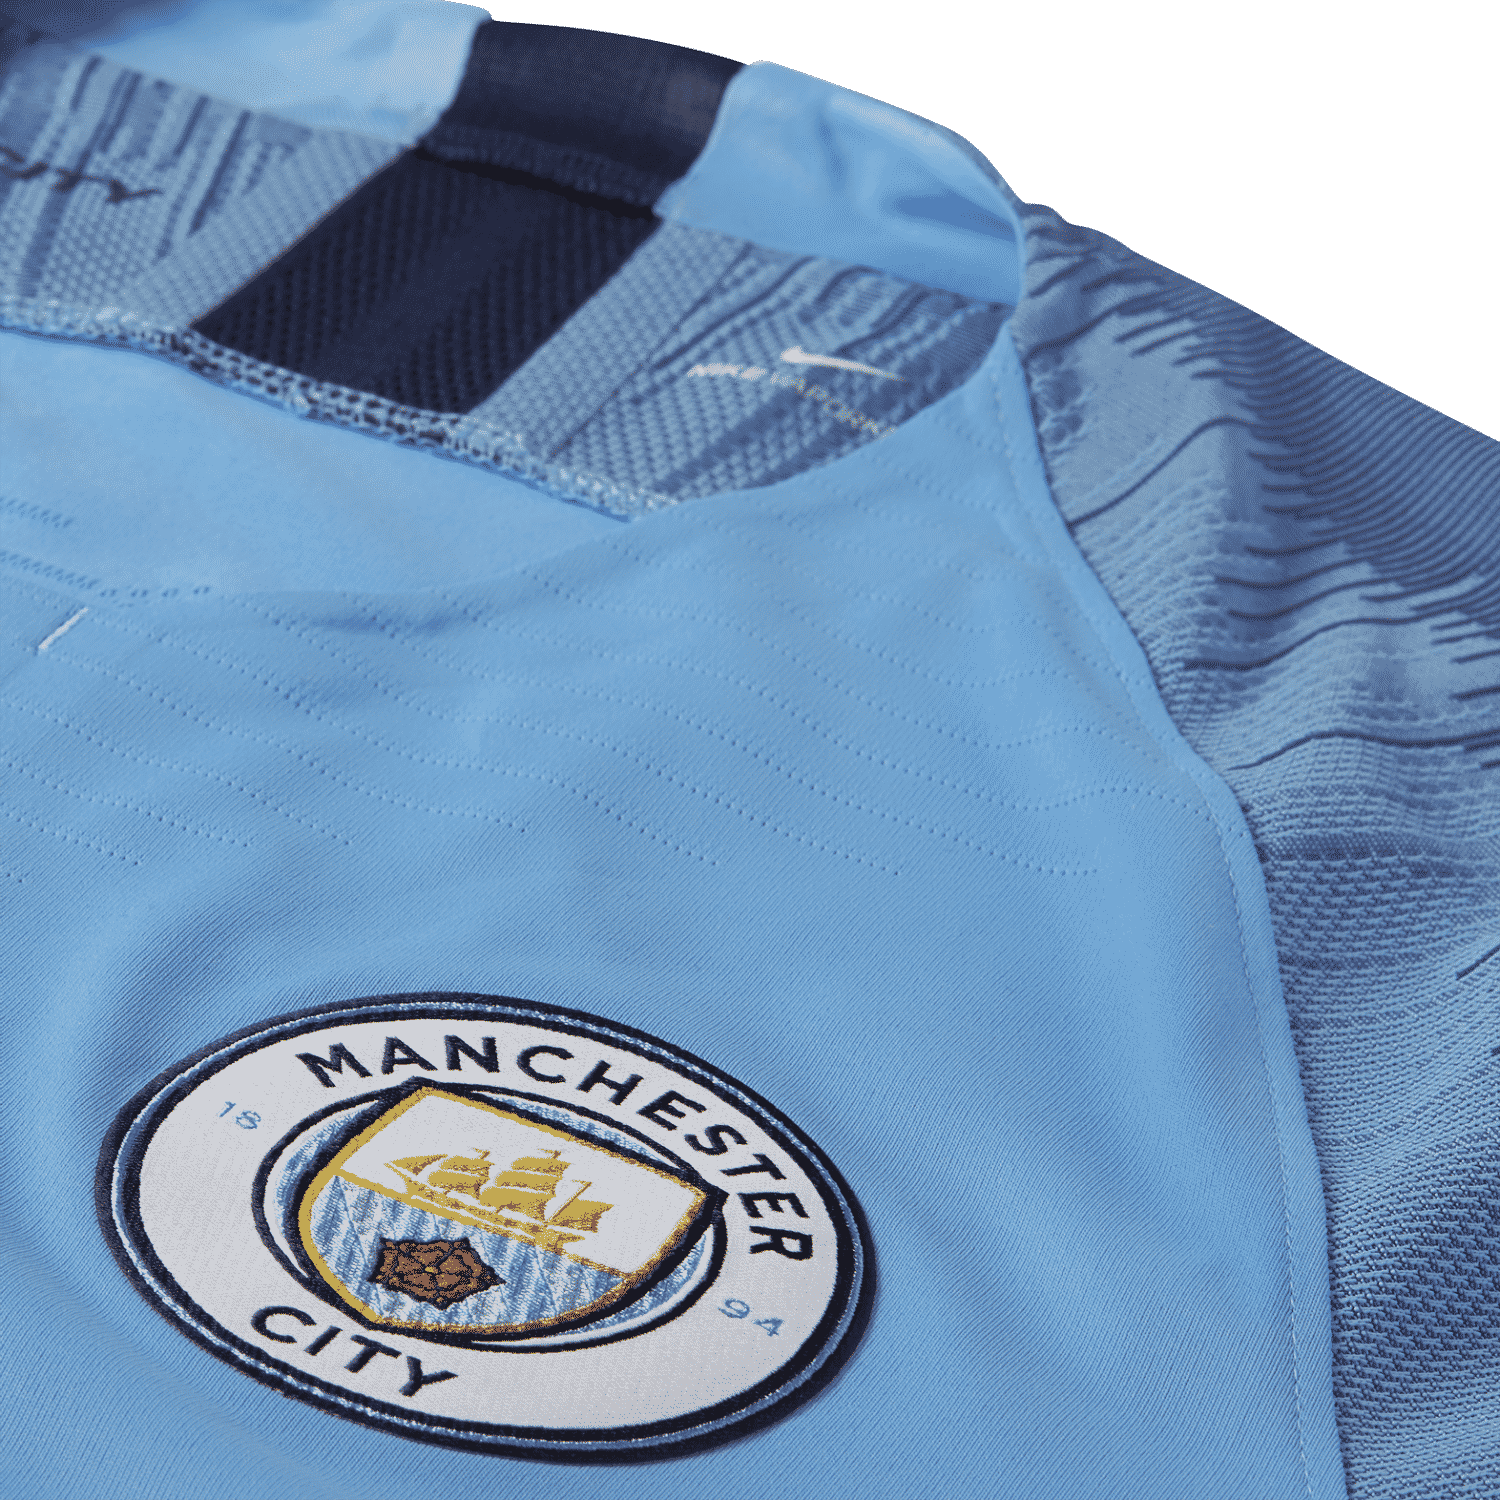 Maillot-football-nike-manchester-city-mai-2018-4